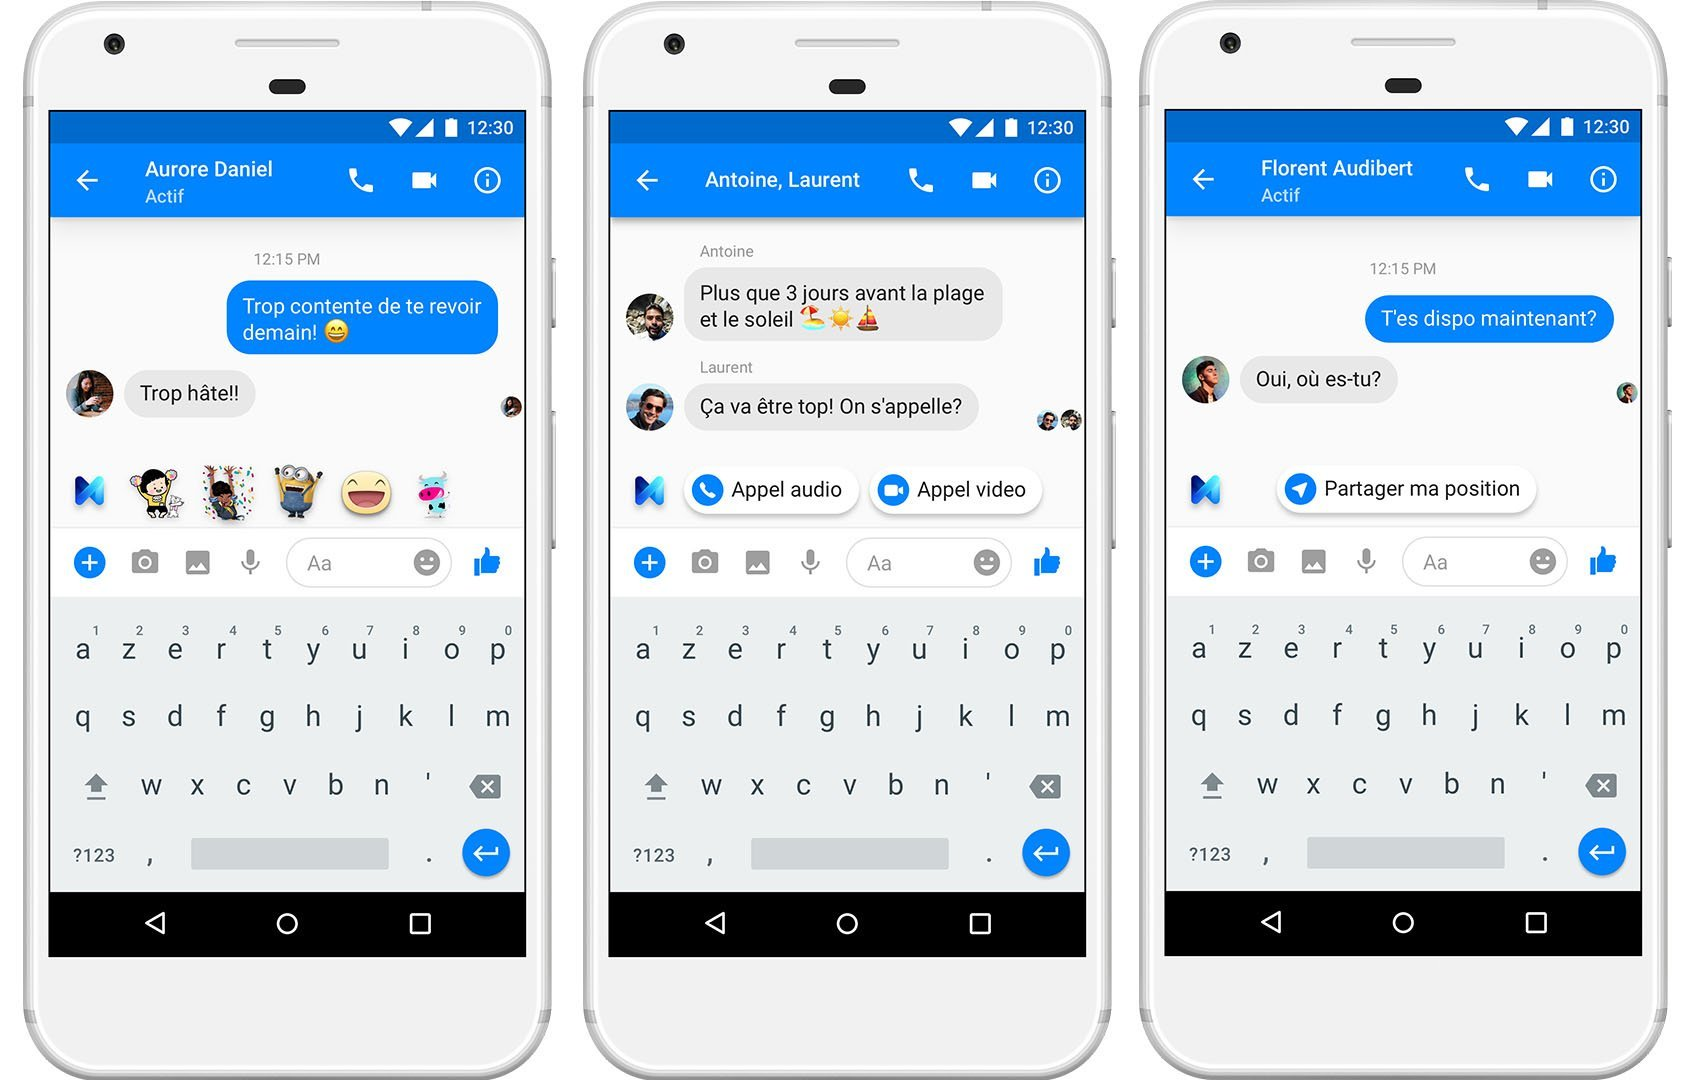 Facebook Messenger : que peut-on faire avec l'assistant virtuel M, en France ?